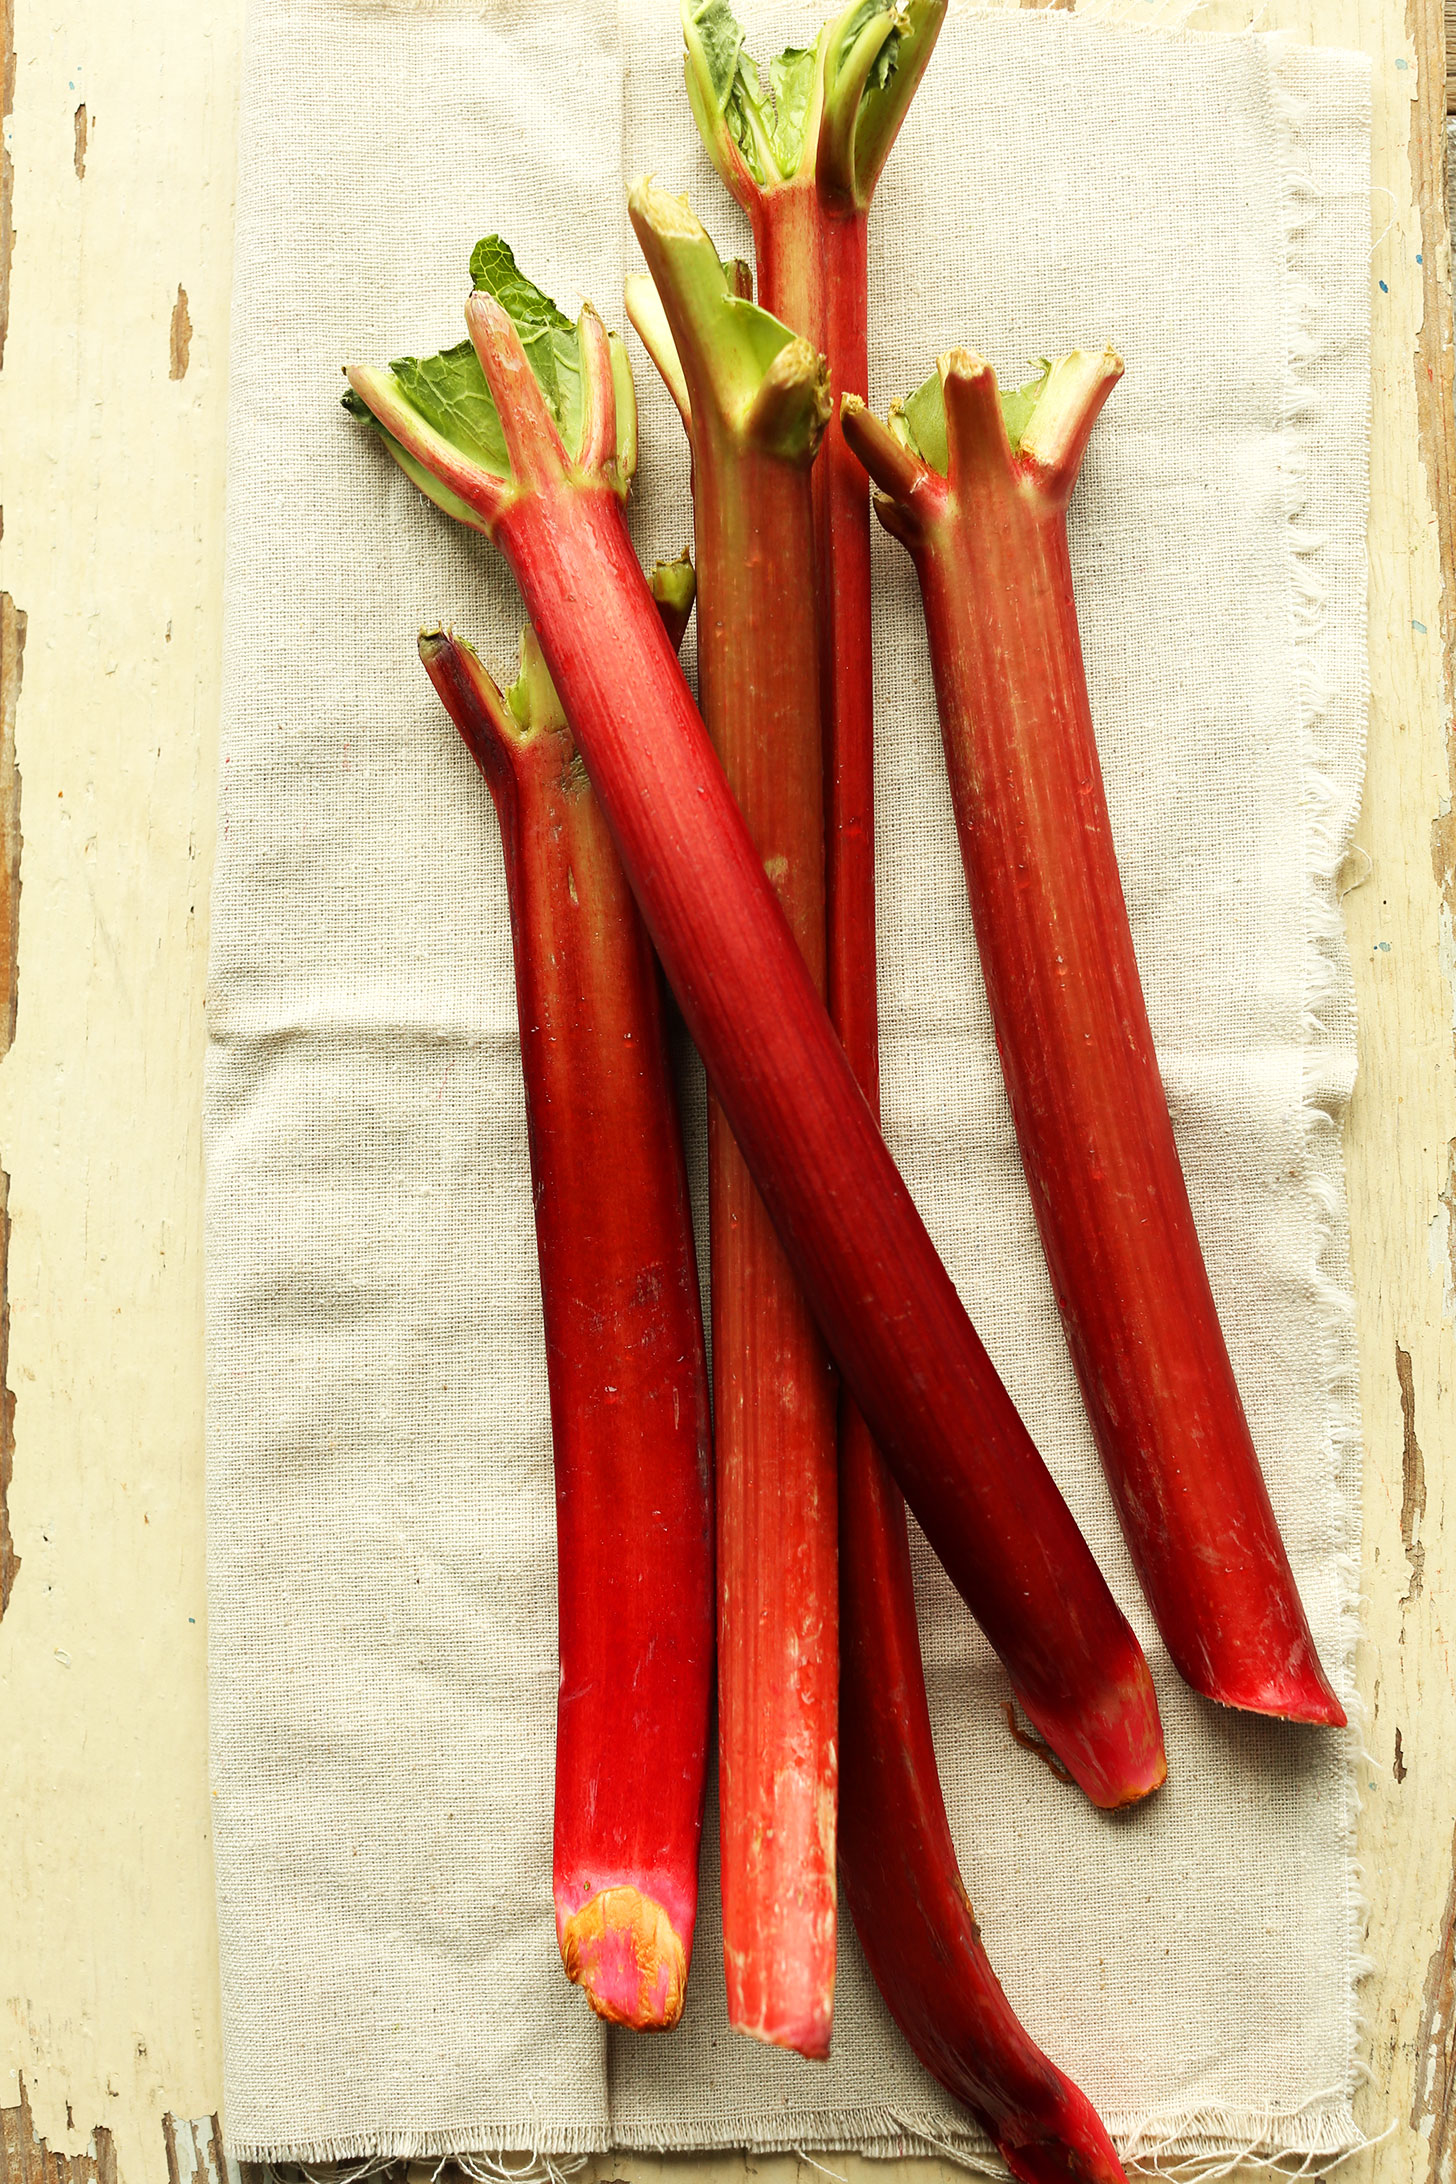 Stalks of fresh rhubarb for make homemade crumble bars